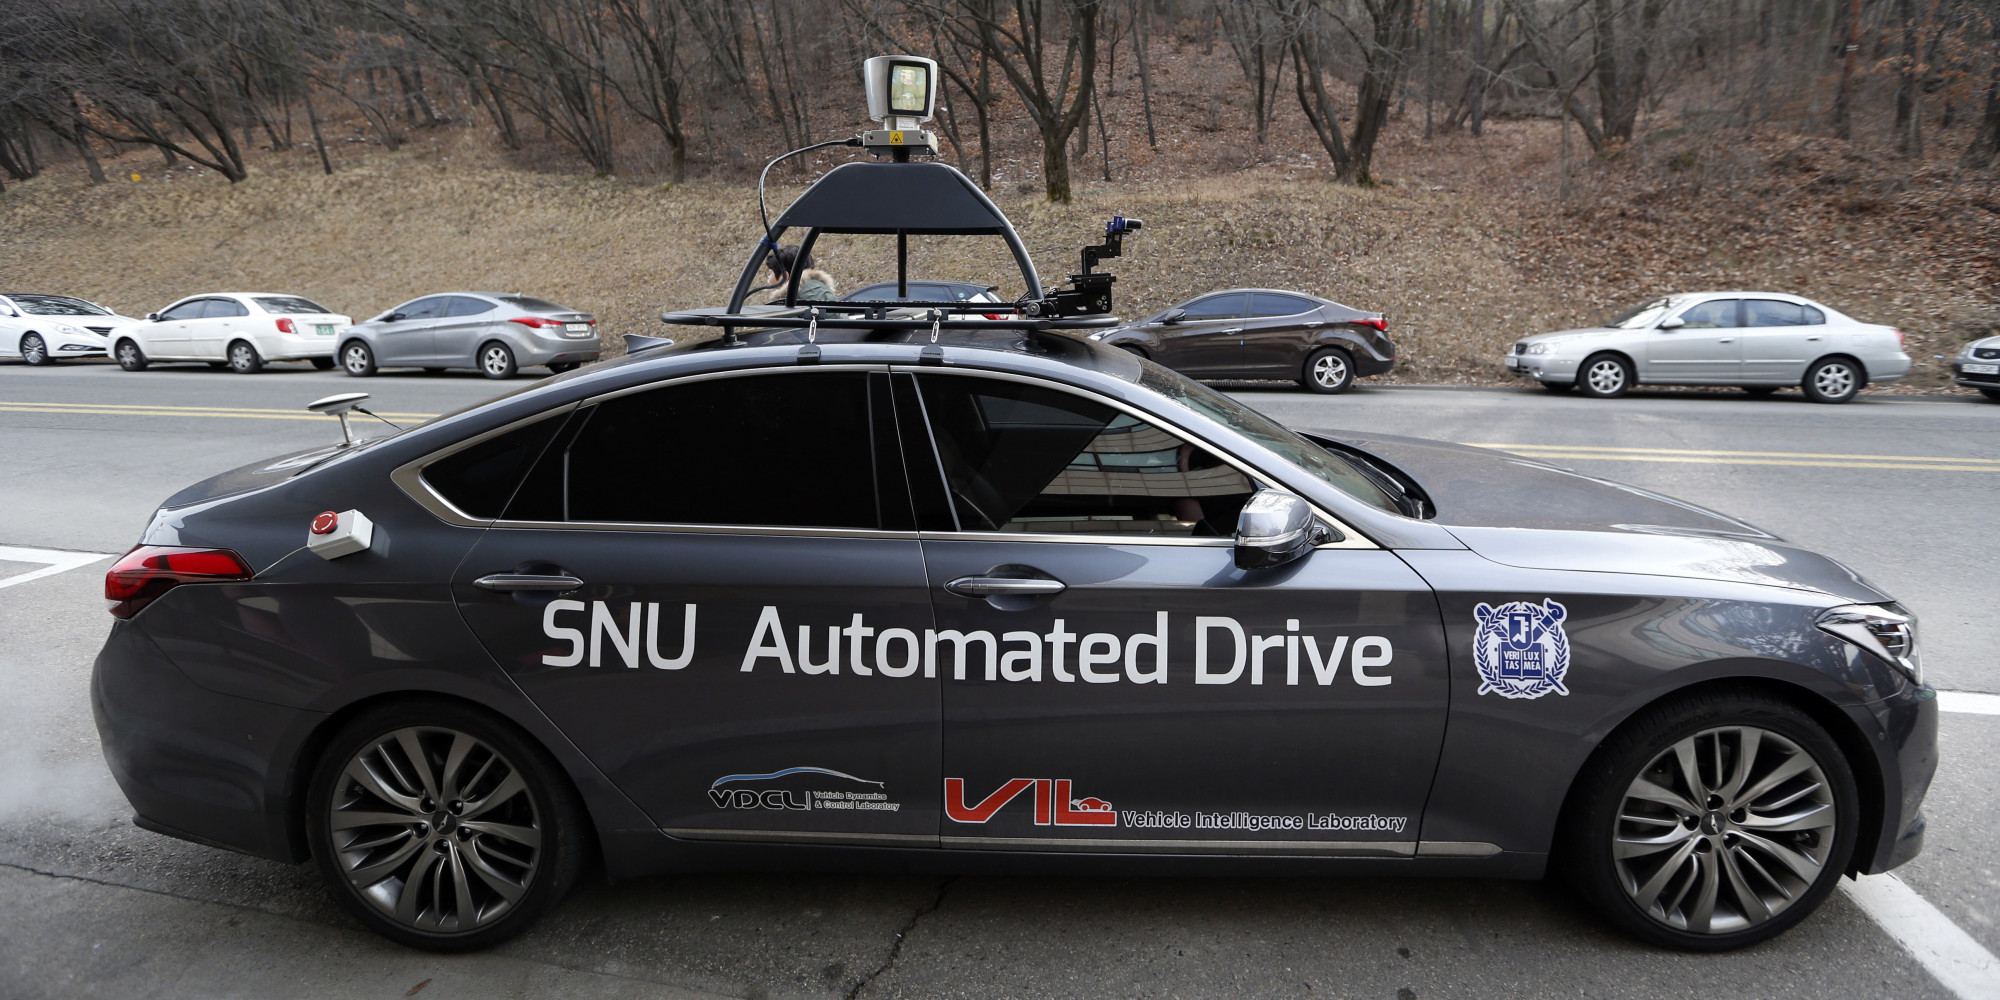 South Korea Driverless Taxi SNUber